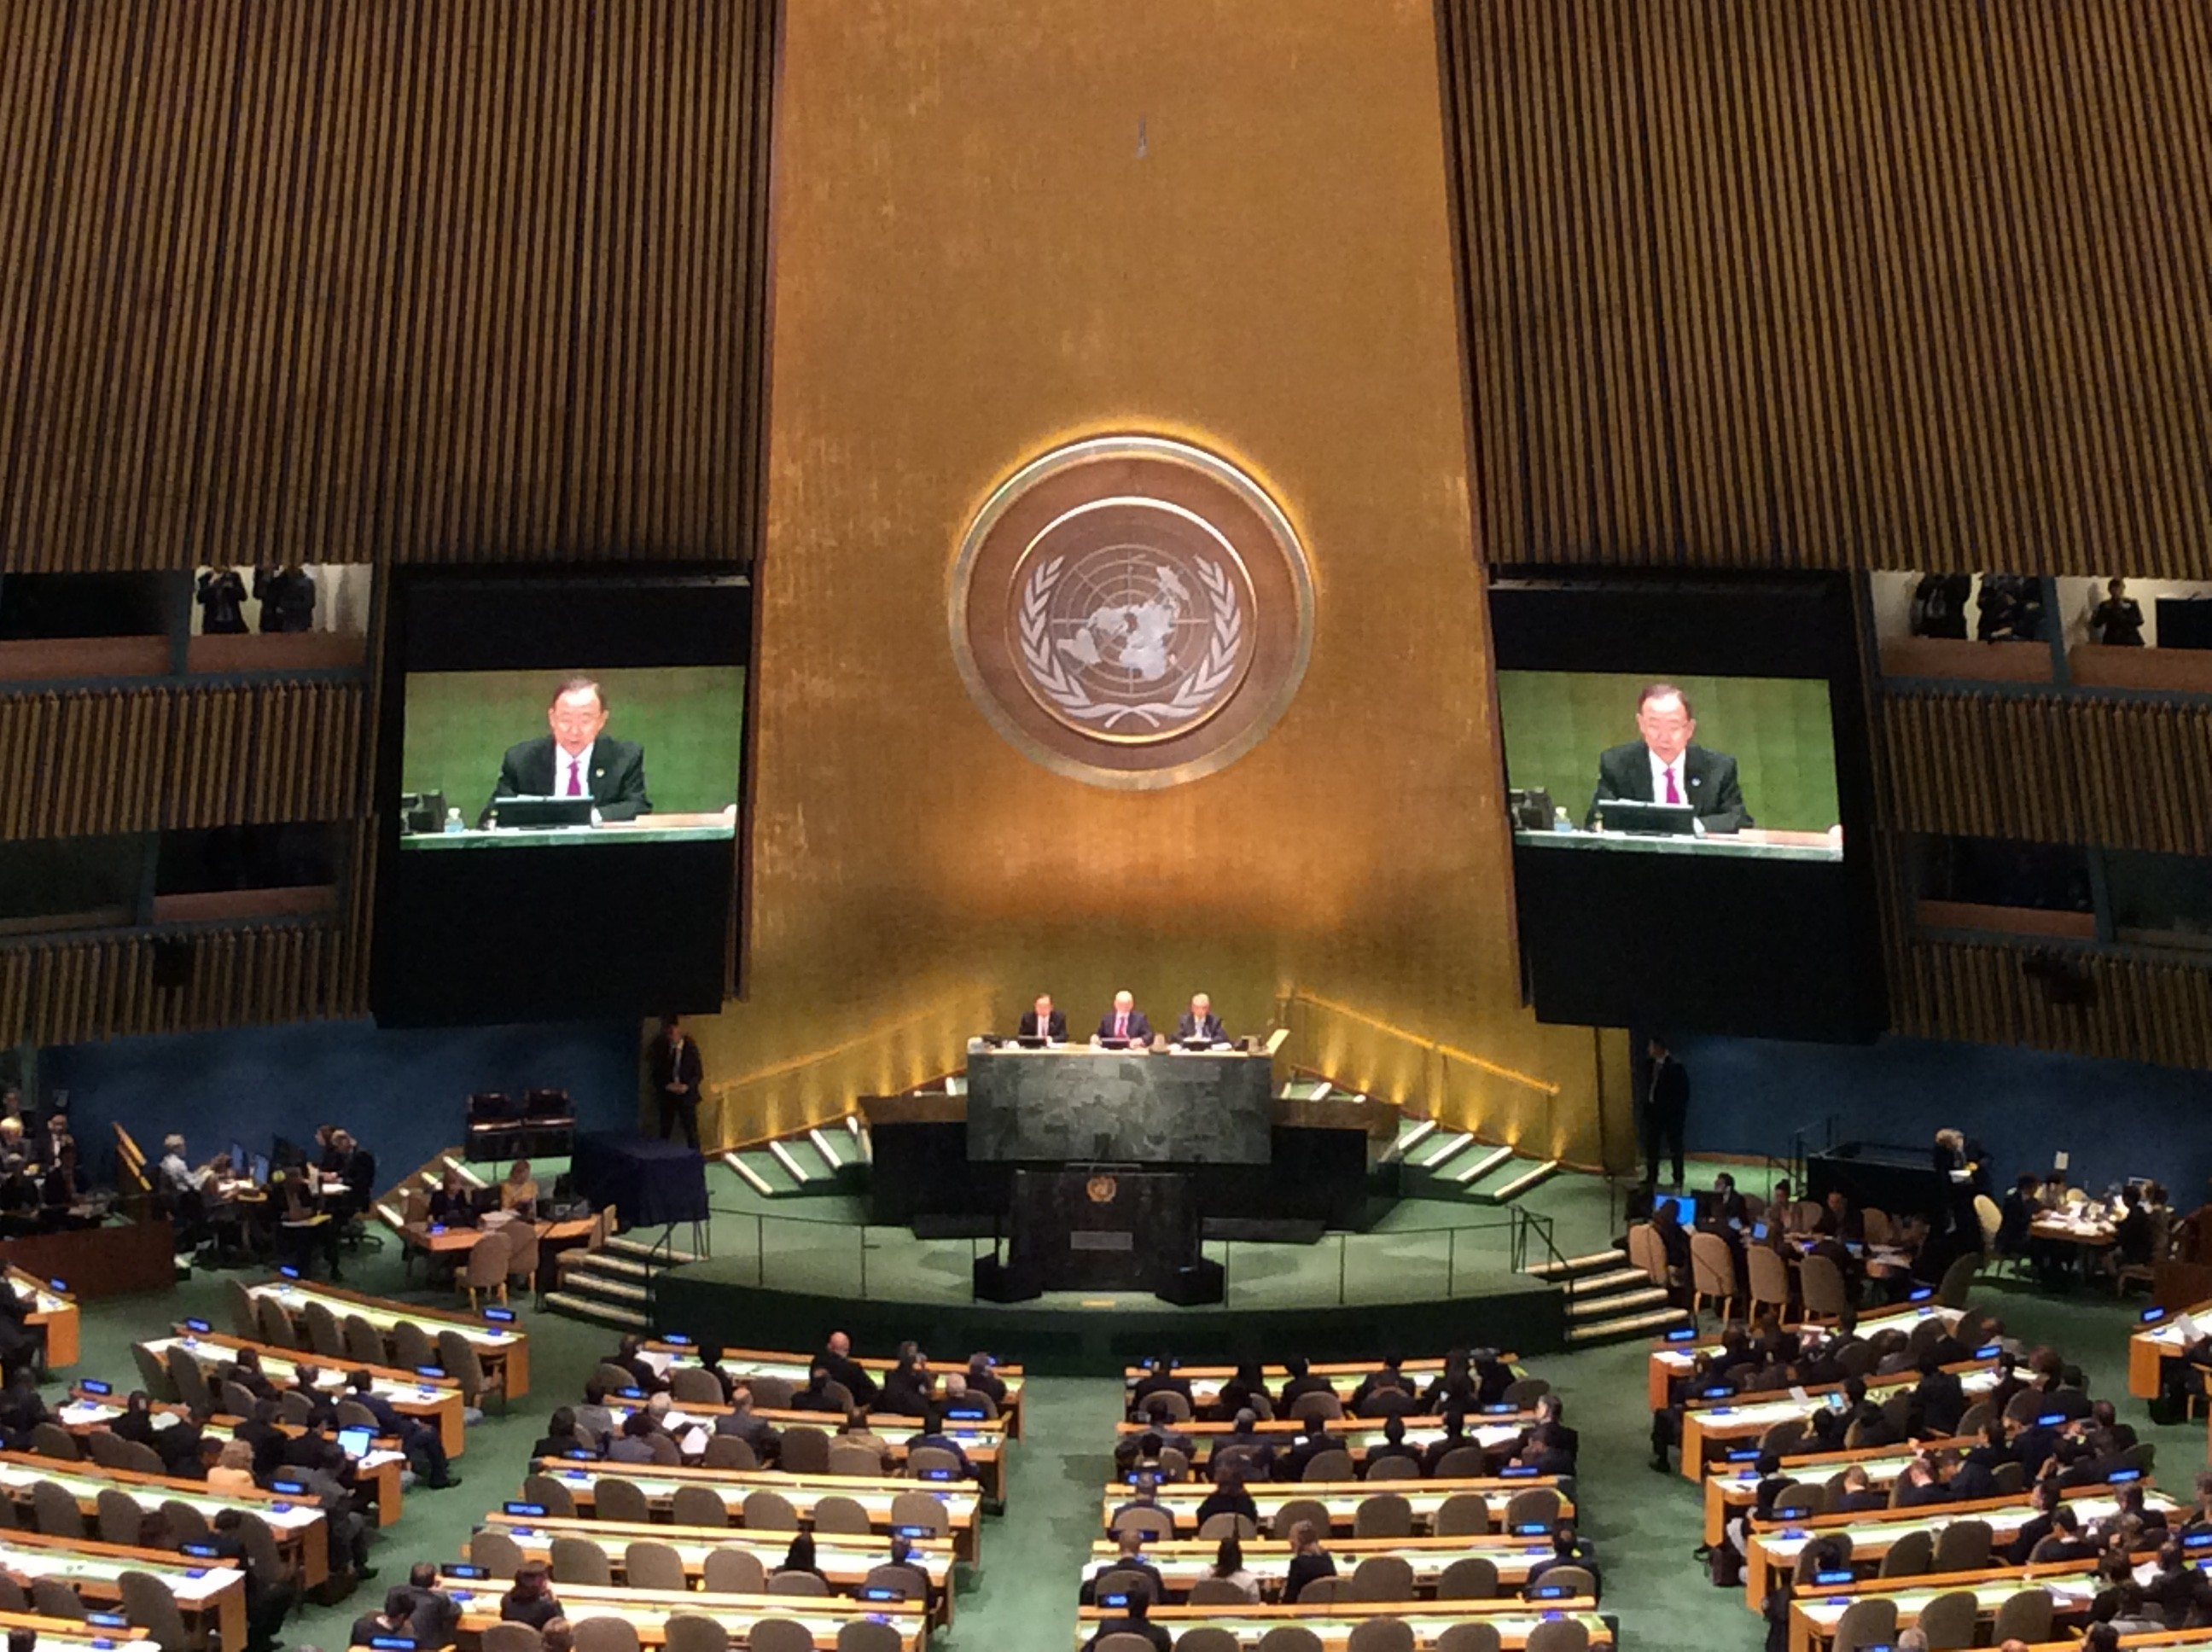 Ban ki Moon at the UN General Assembly in New York